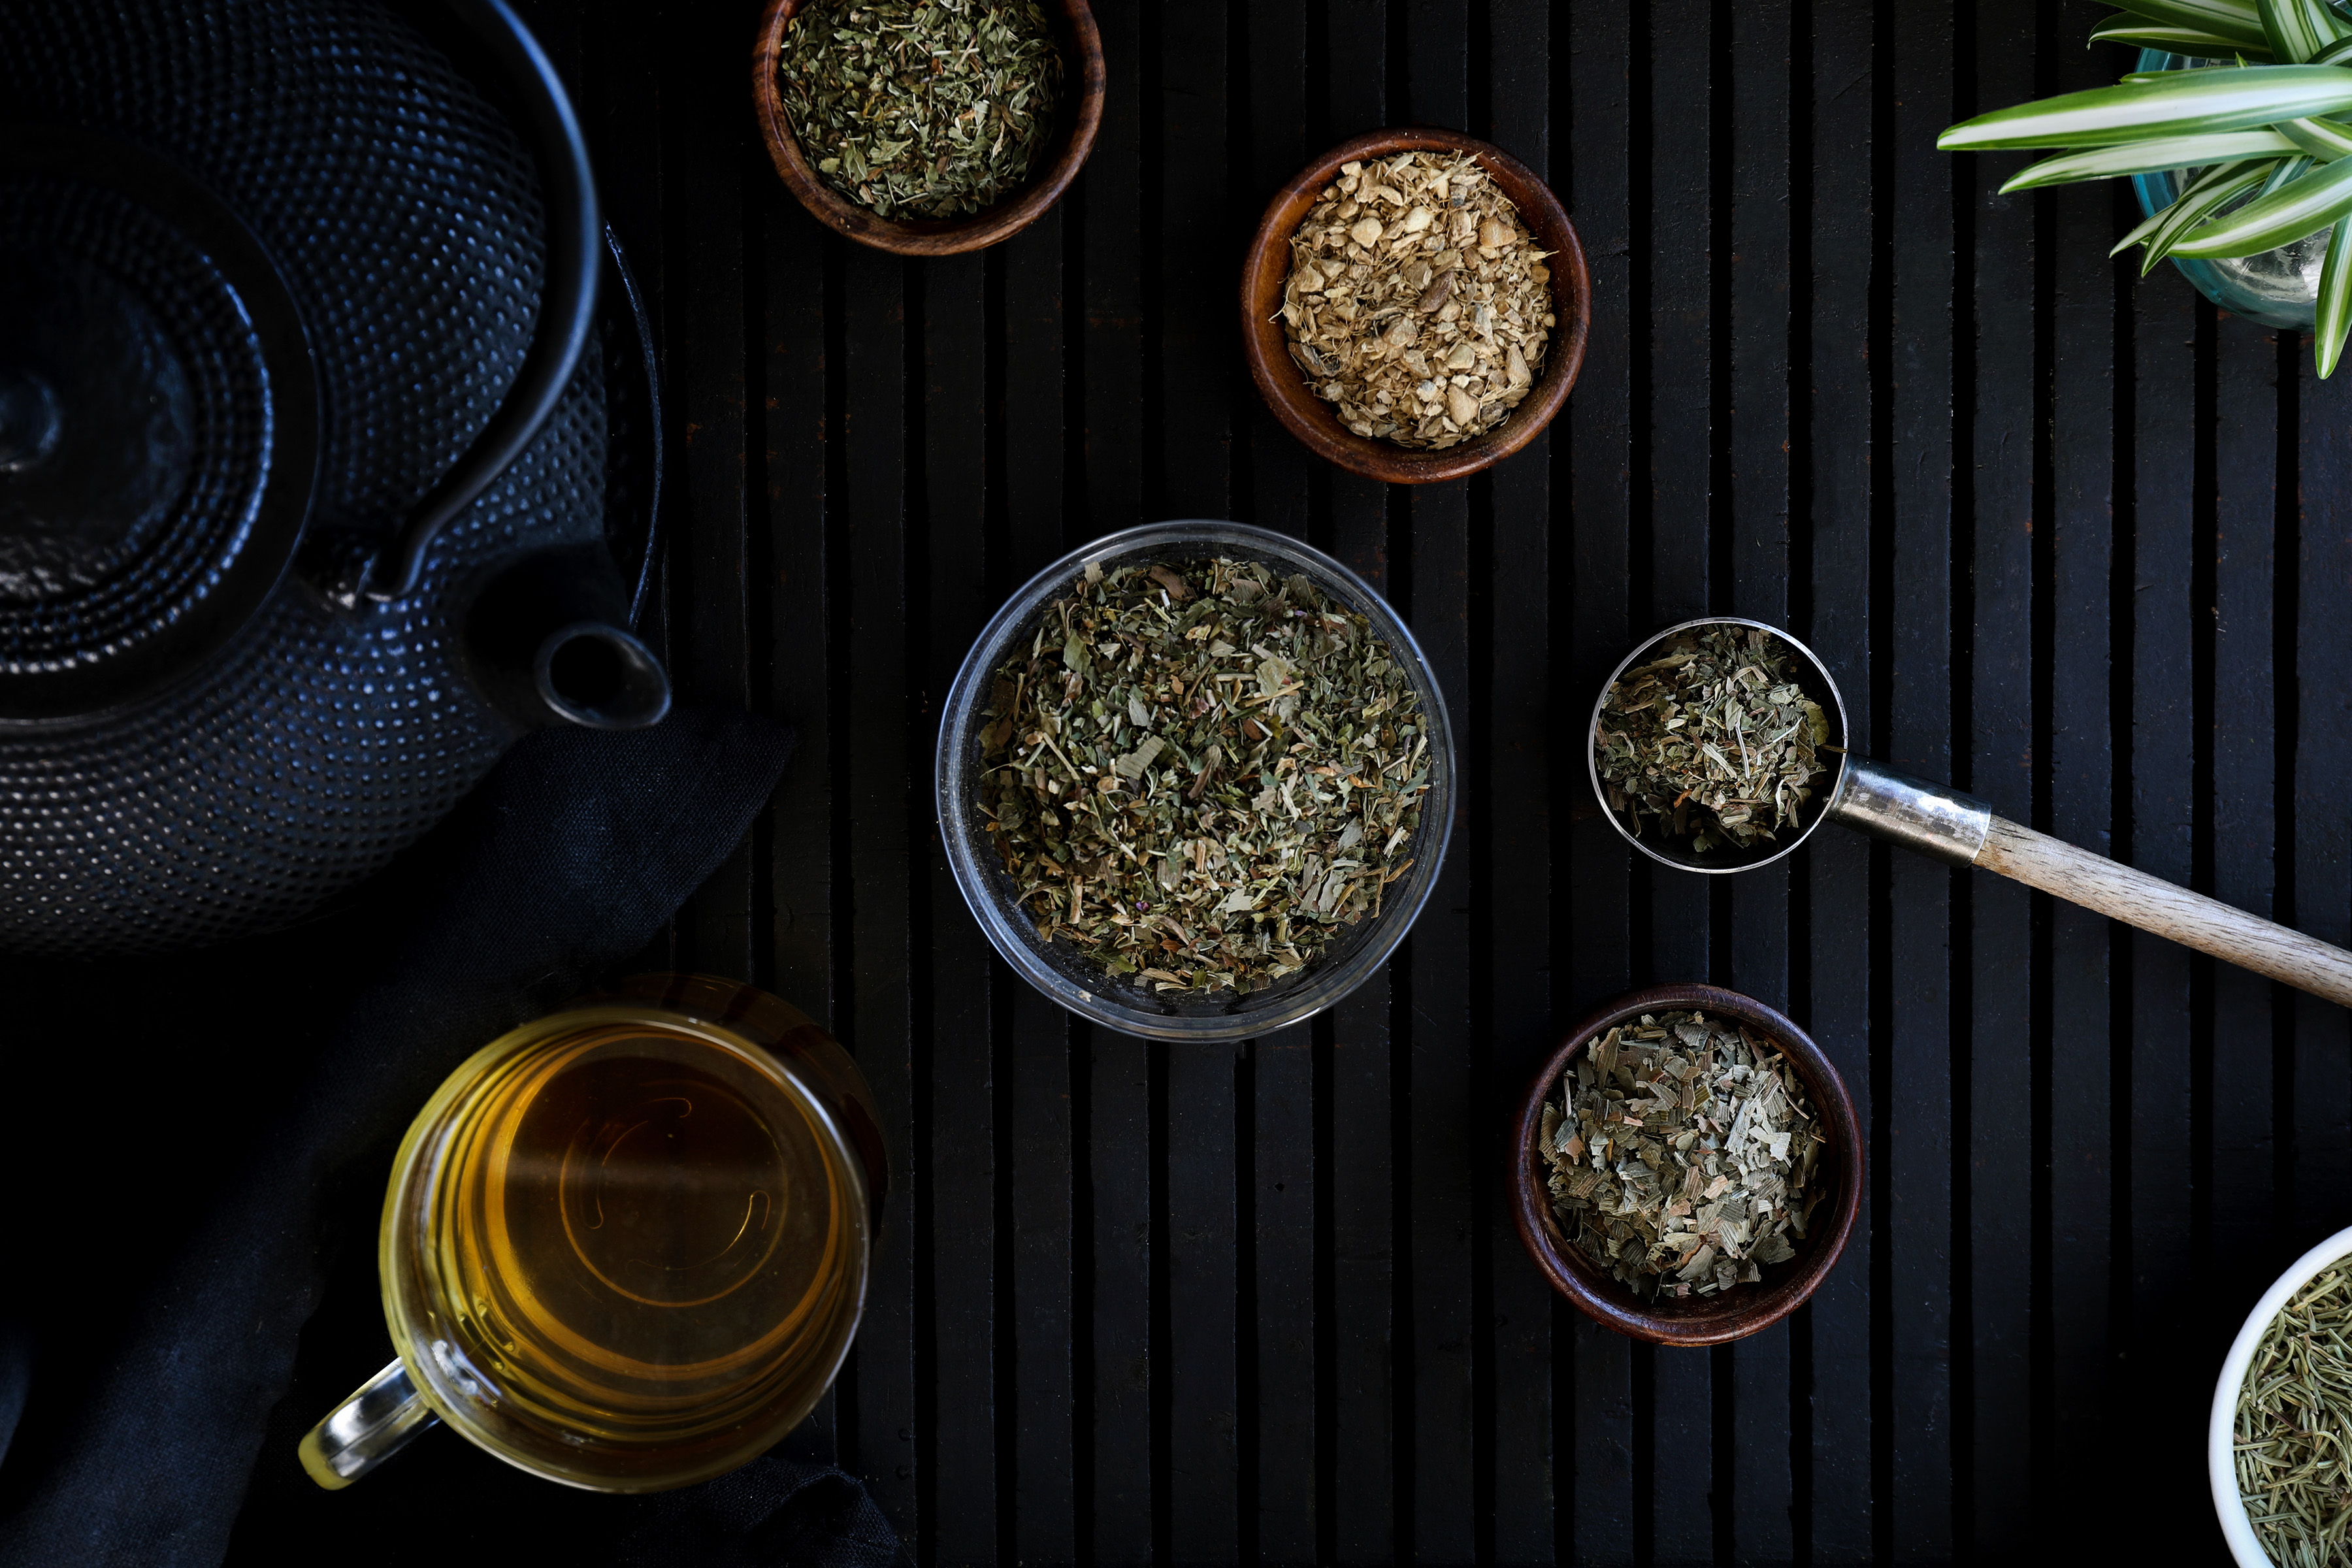 Ingredients for blending a tea for brain functioning and memory aid include ginko biloba, gotu kola, ginger root, rosemary, peppermint, and red clover.